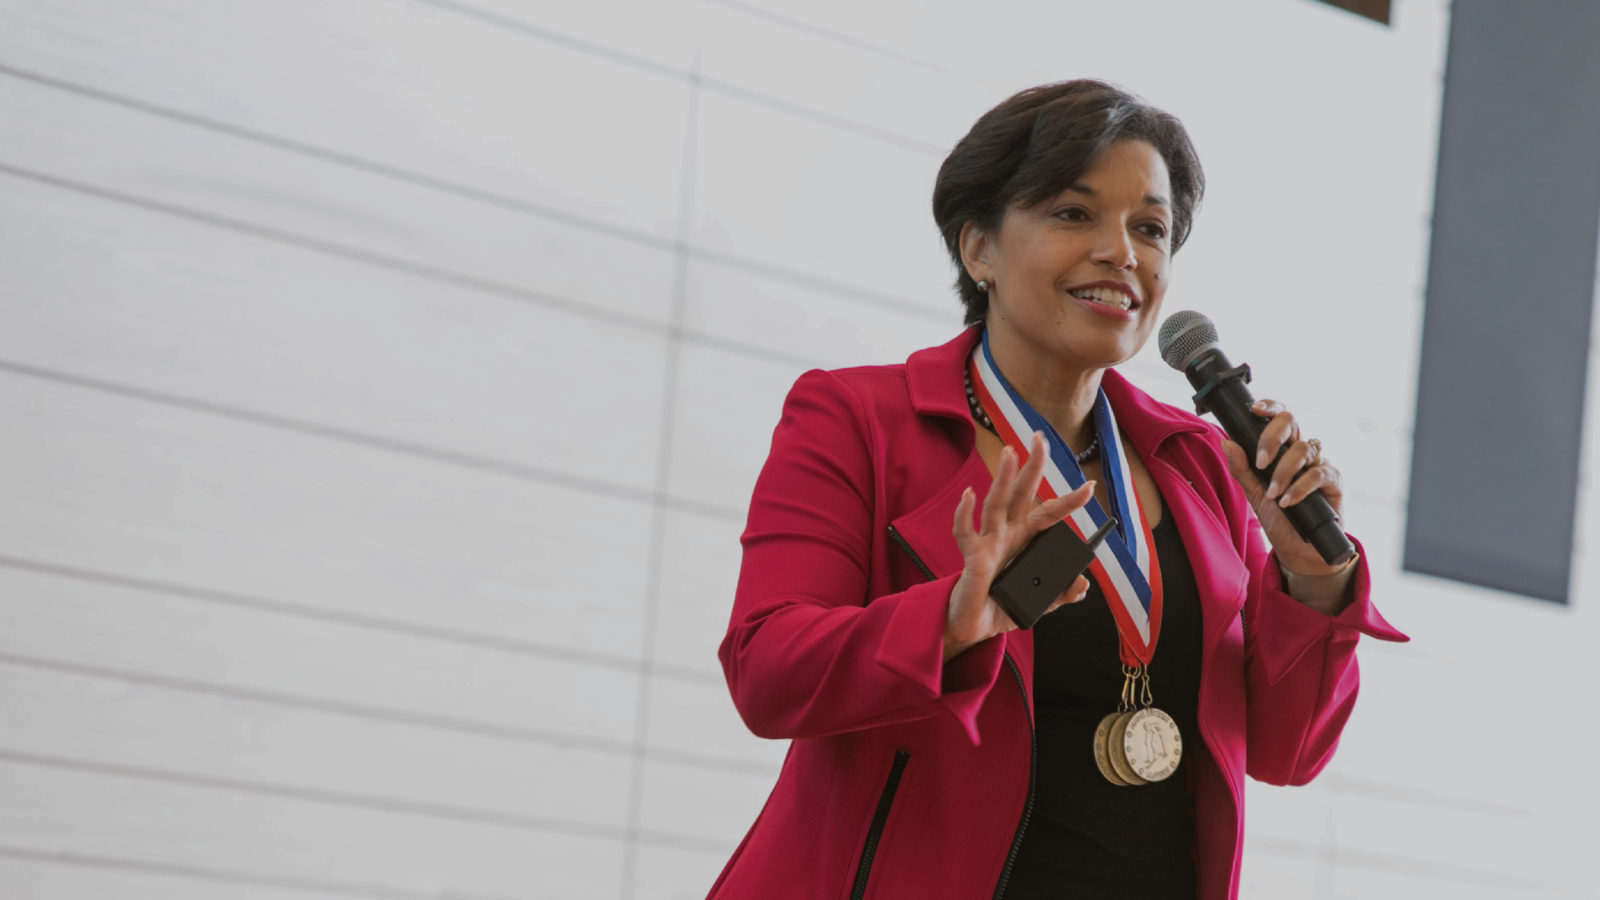 Bonnie St John speaking while wearing Olympic medals